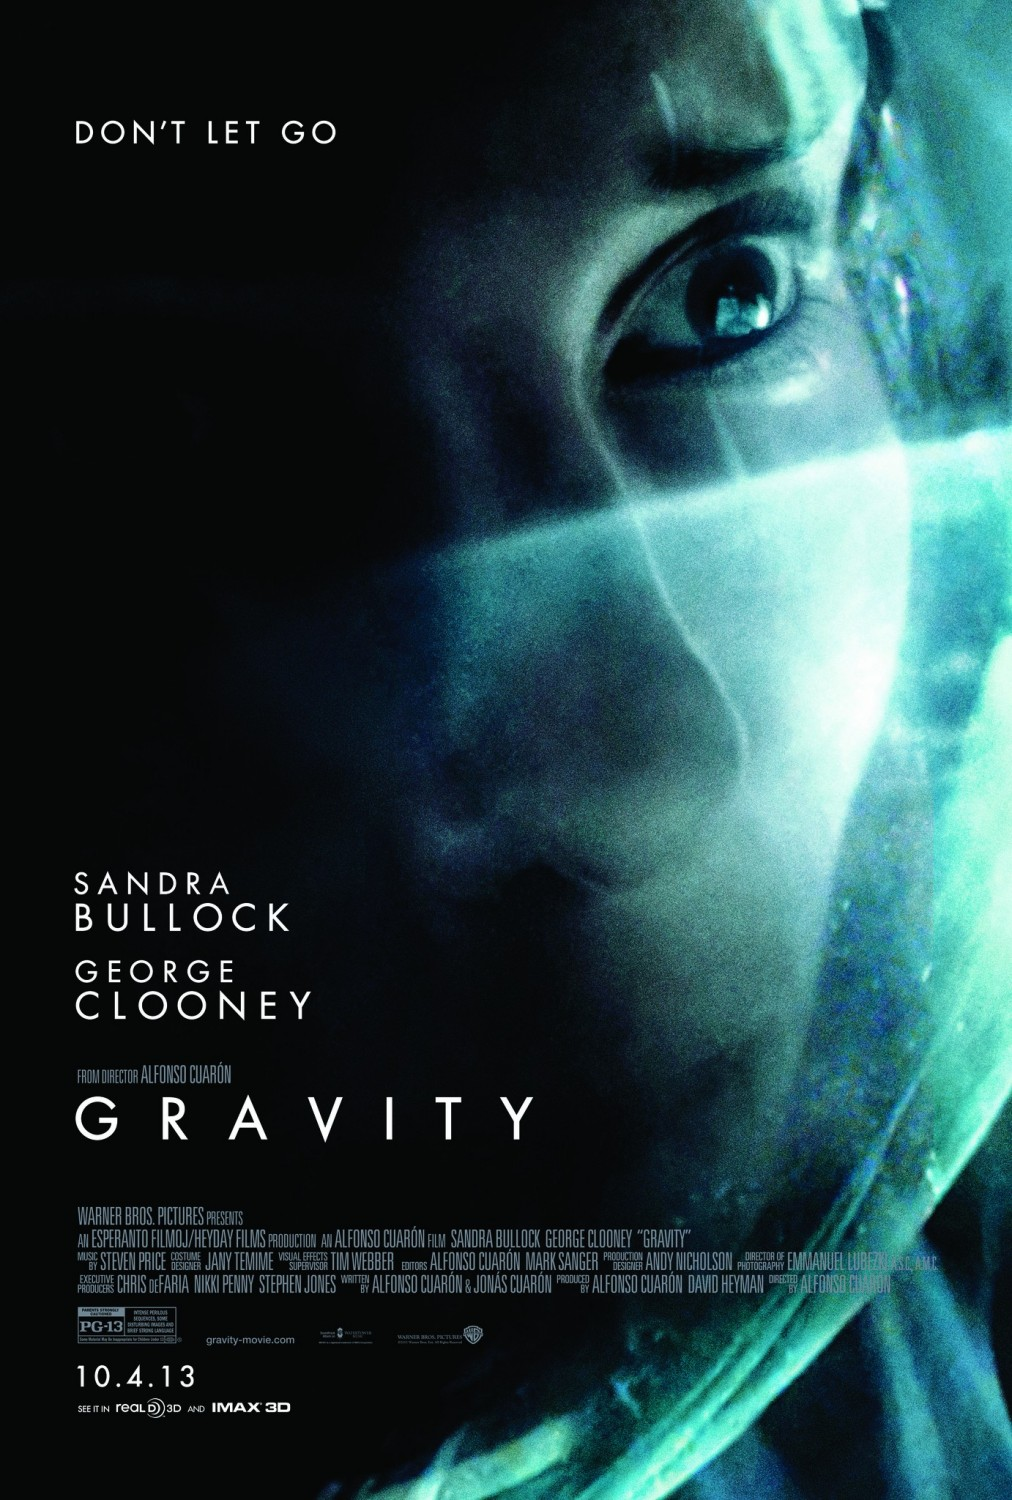 Review: Gravity, Mr. Pip, Grown Ups 2, Battle of the Year 3D and 2 Guns